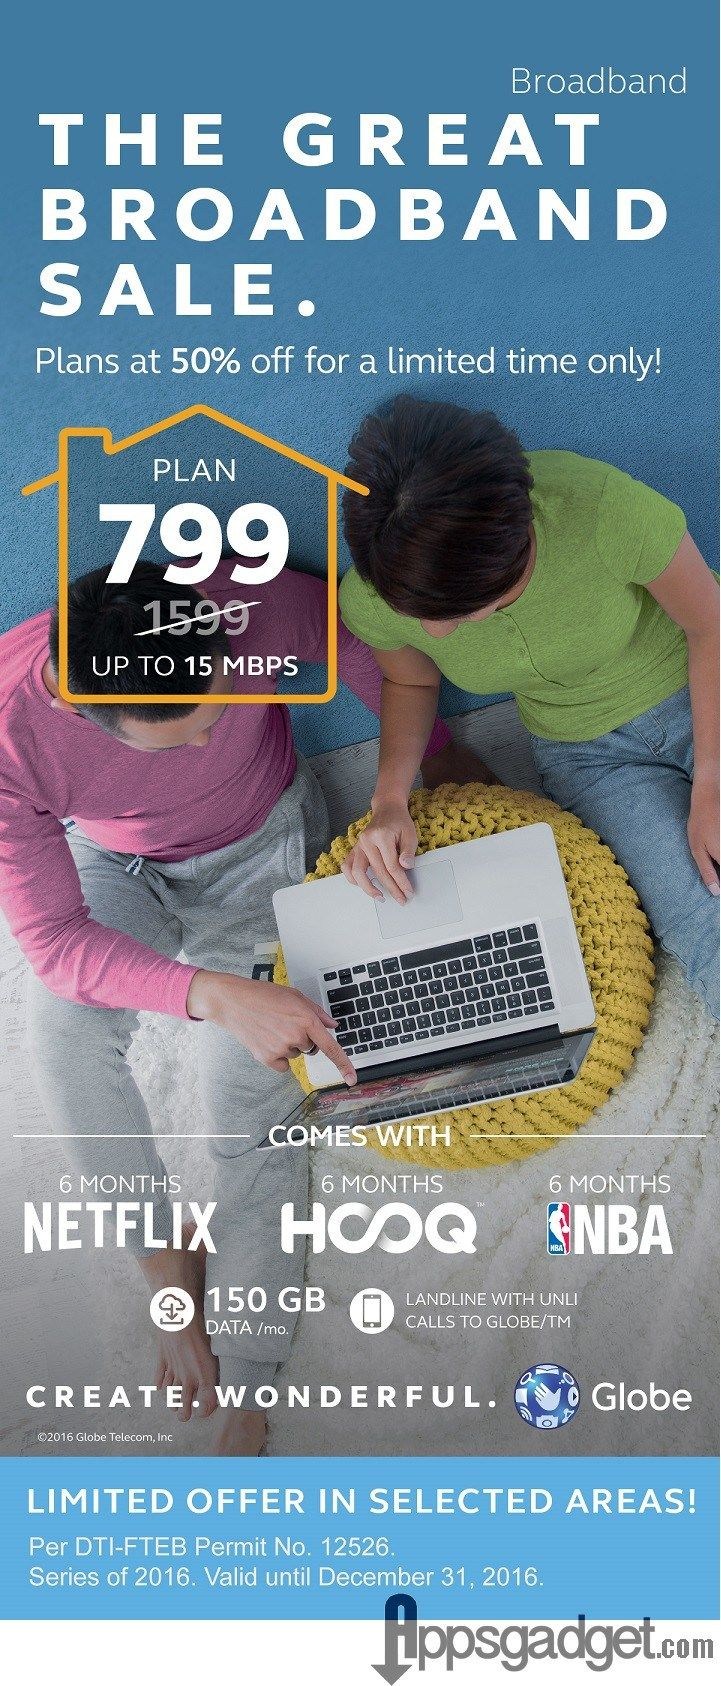 Globe Broadband and Bayan Broadband 50% off Monthly